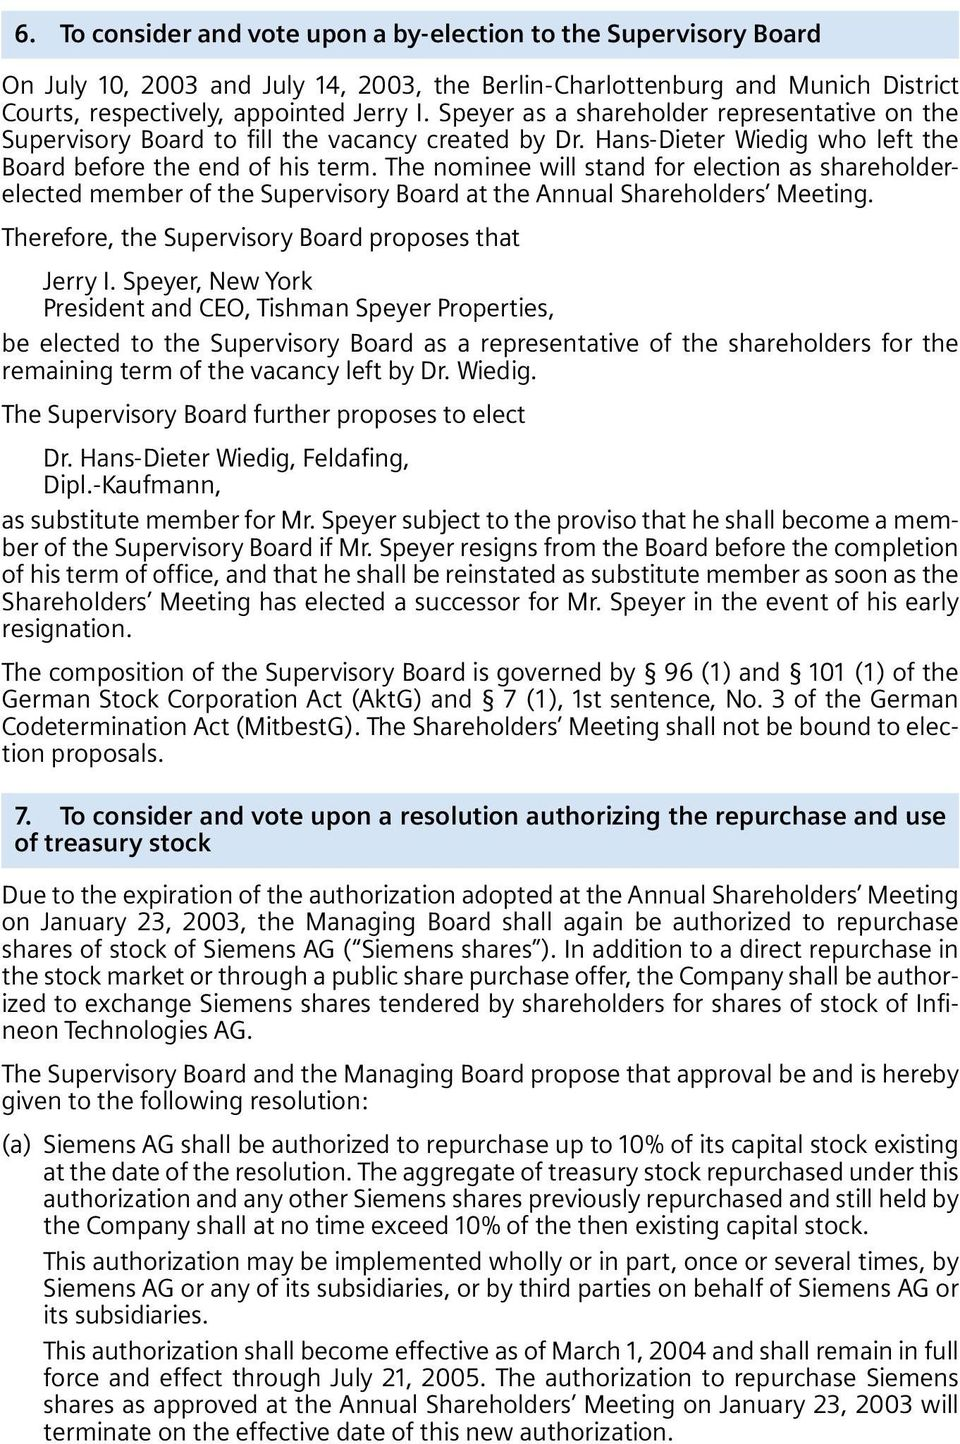 The nominee will stand for election as shareholderelected member of the Supervisory Board at the Annual Shareholders Meeting. Therefore, the Supervisory Board proposes that Jerry I.